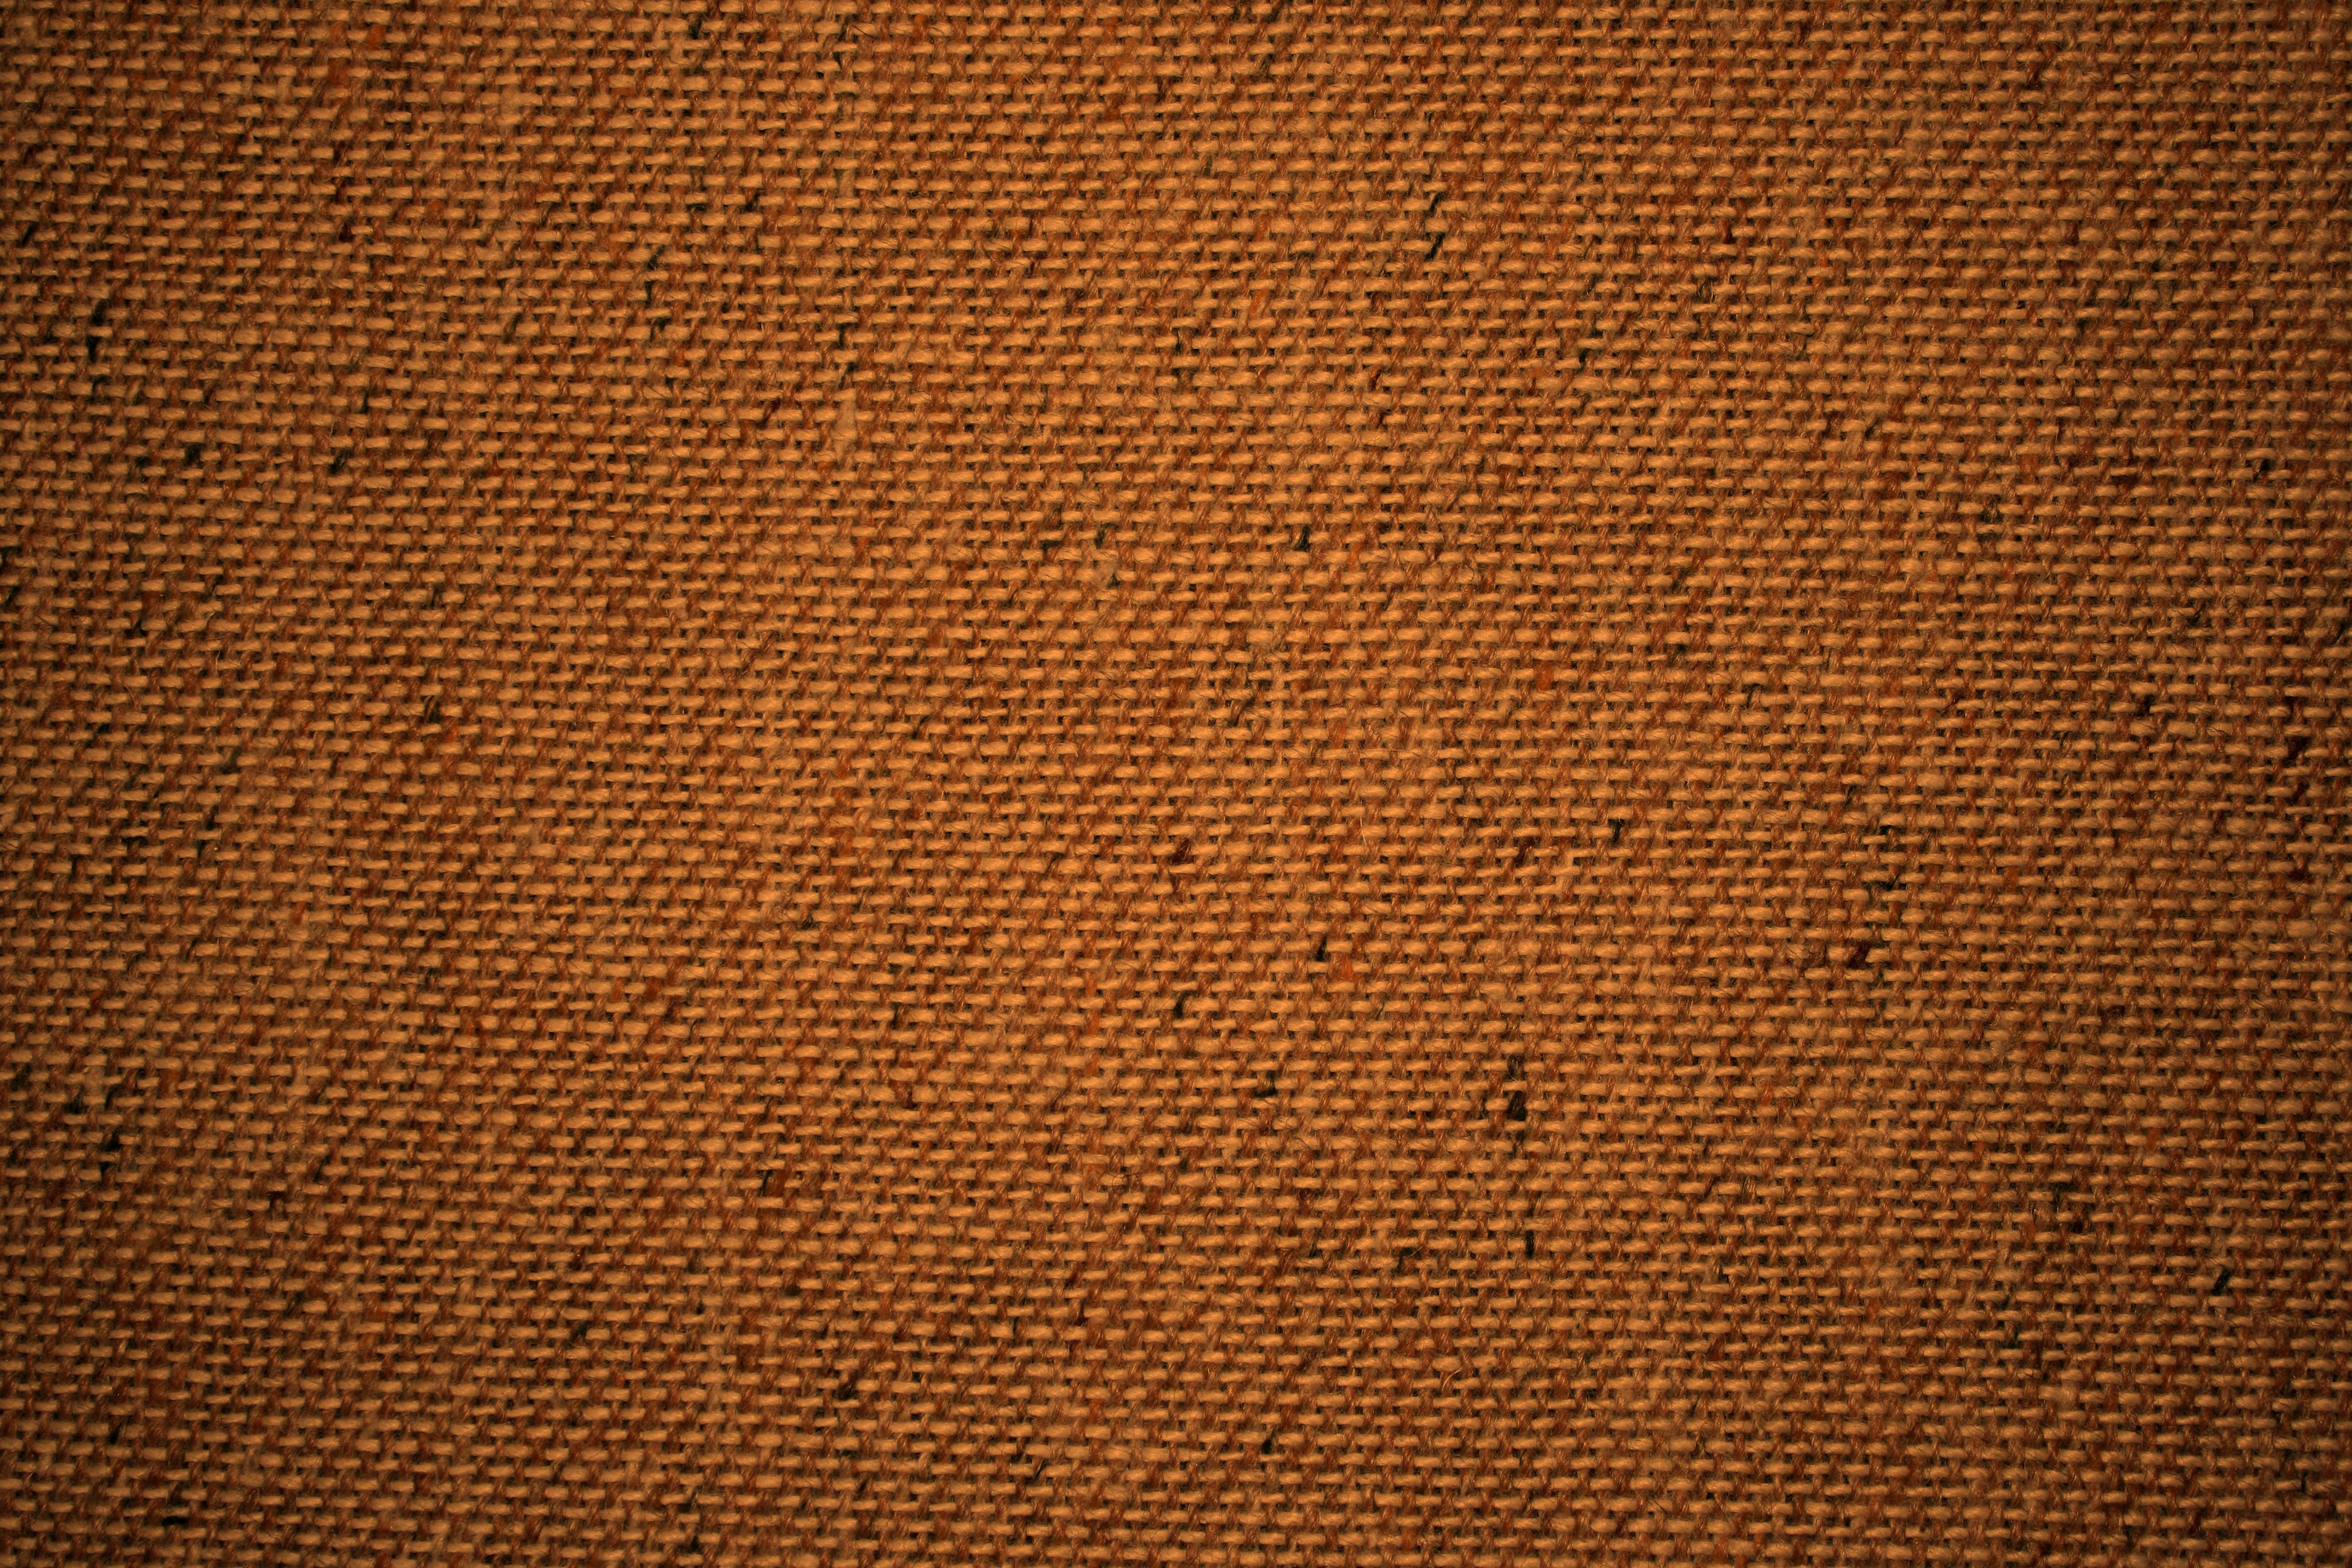 Rust Orange Upholstery Fabric Close Up Texture Picture | Free ...